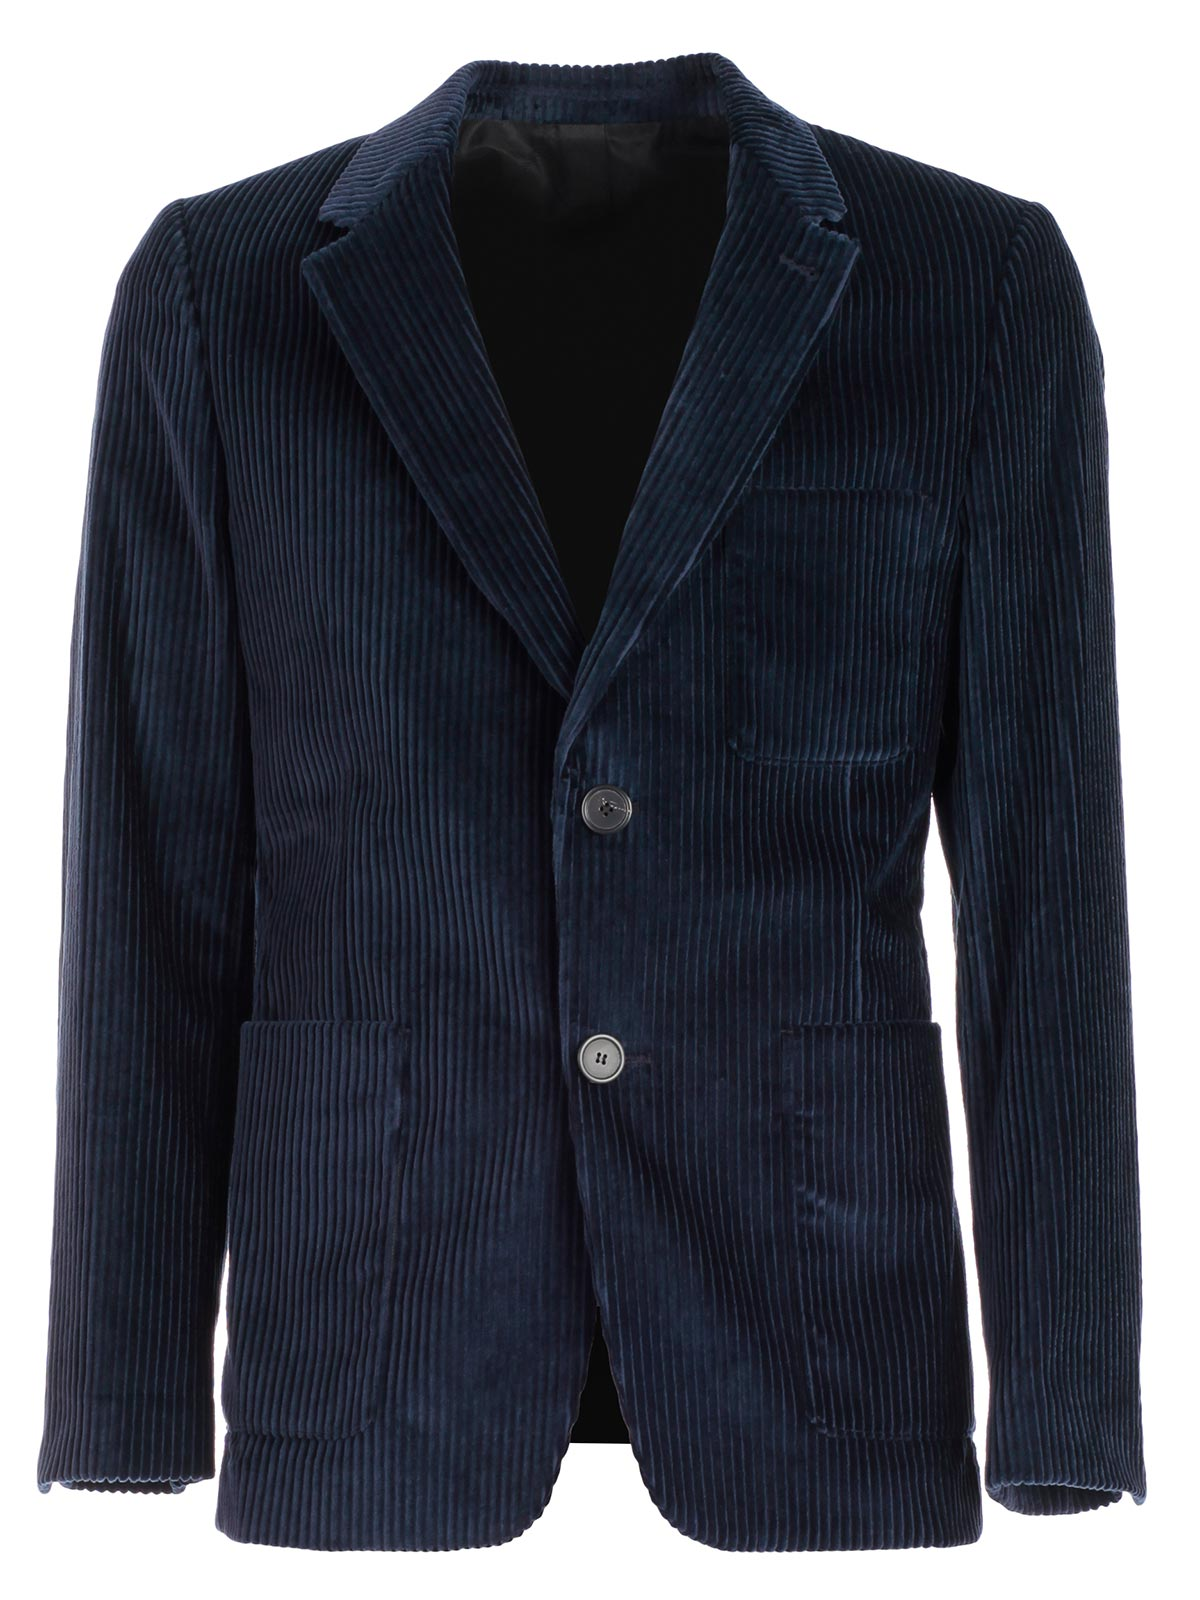 Picture of Ami Alexandre Mattiussi Jacket